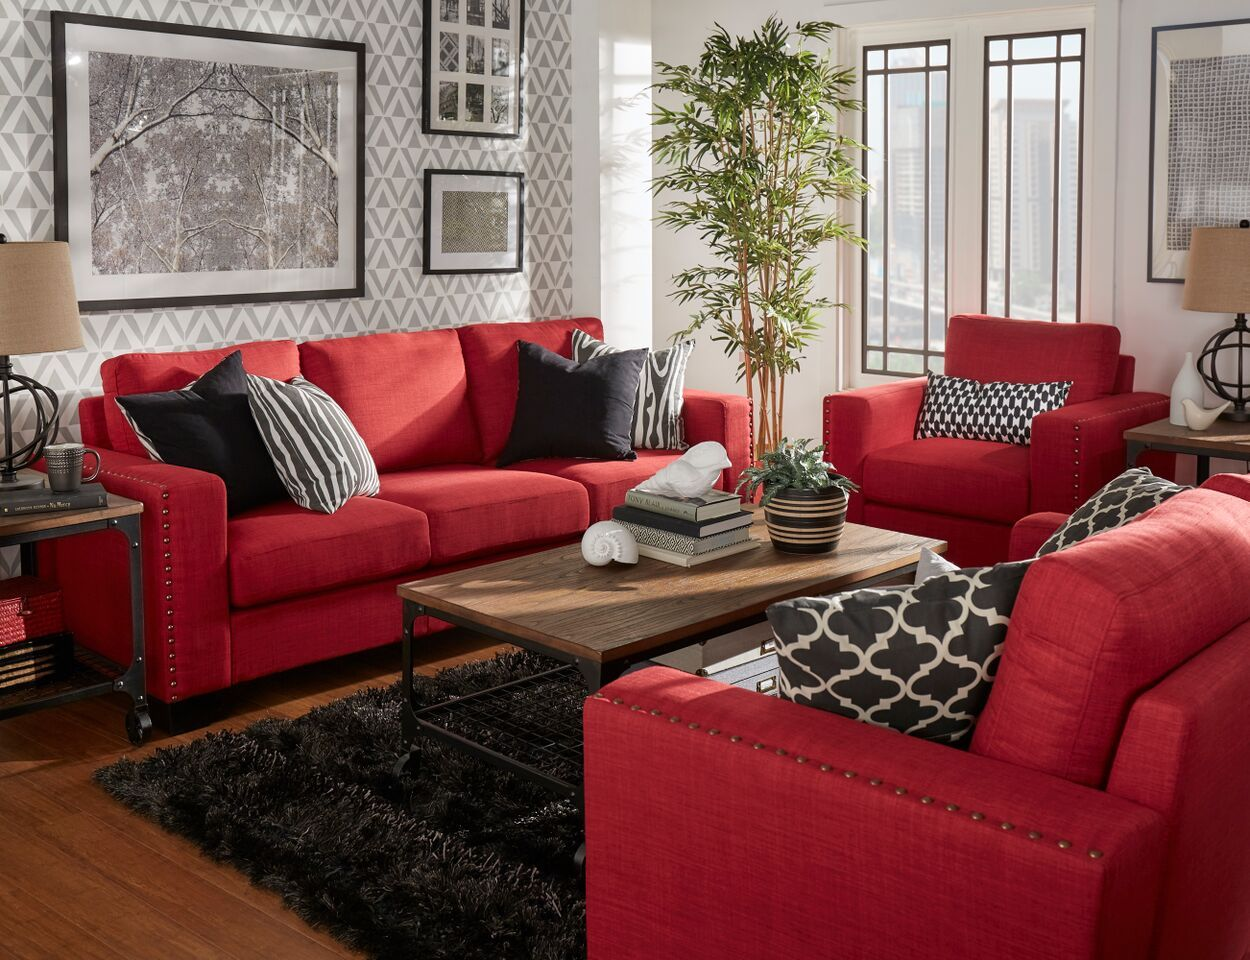 Home Red Living Room Decor Red Furniture Living Room Red Couch Living Room